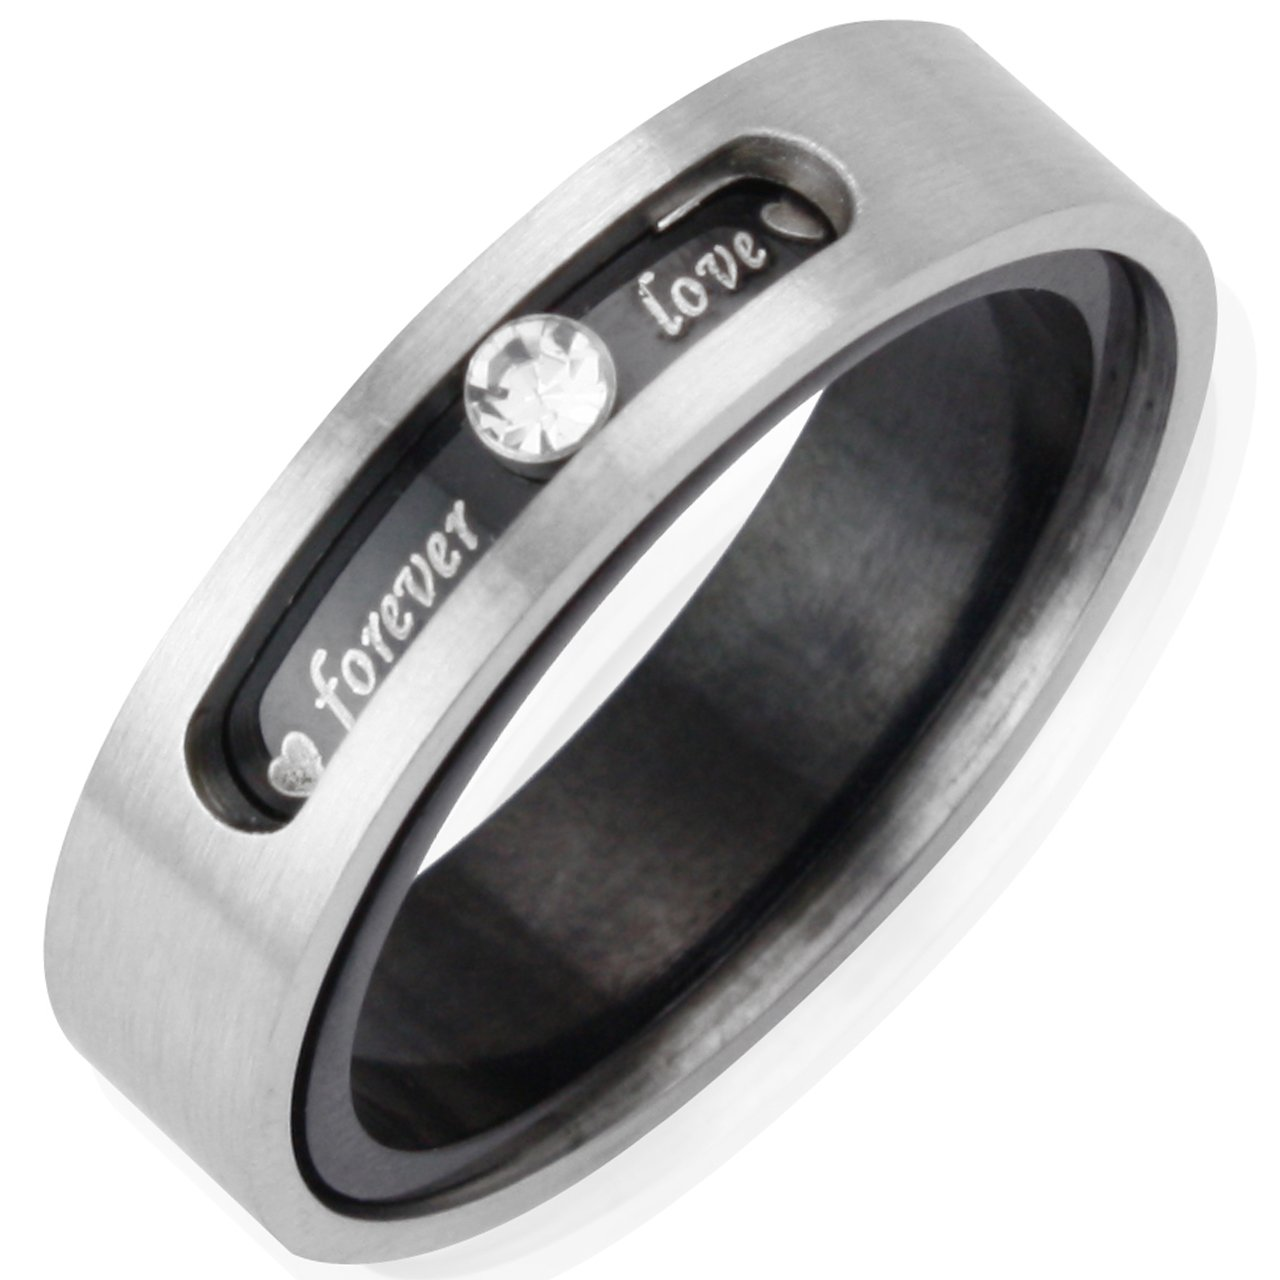 Dual Layer Stainless Steel ''Forever Love'' Twistable 5.1mm Band Ring - Men (Size 10)